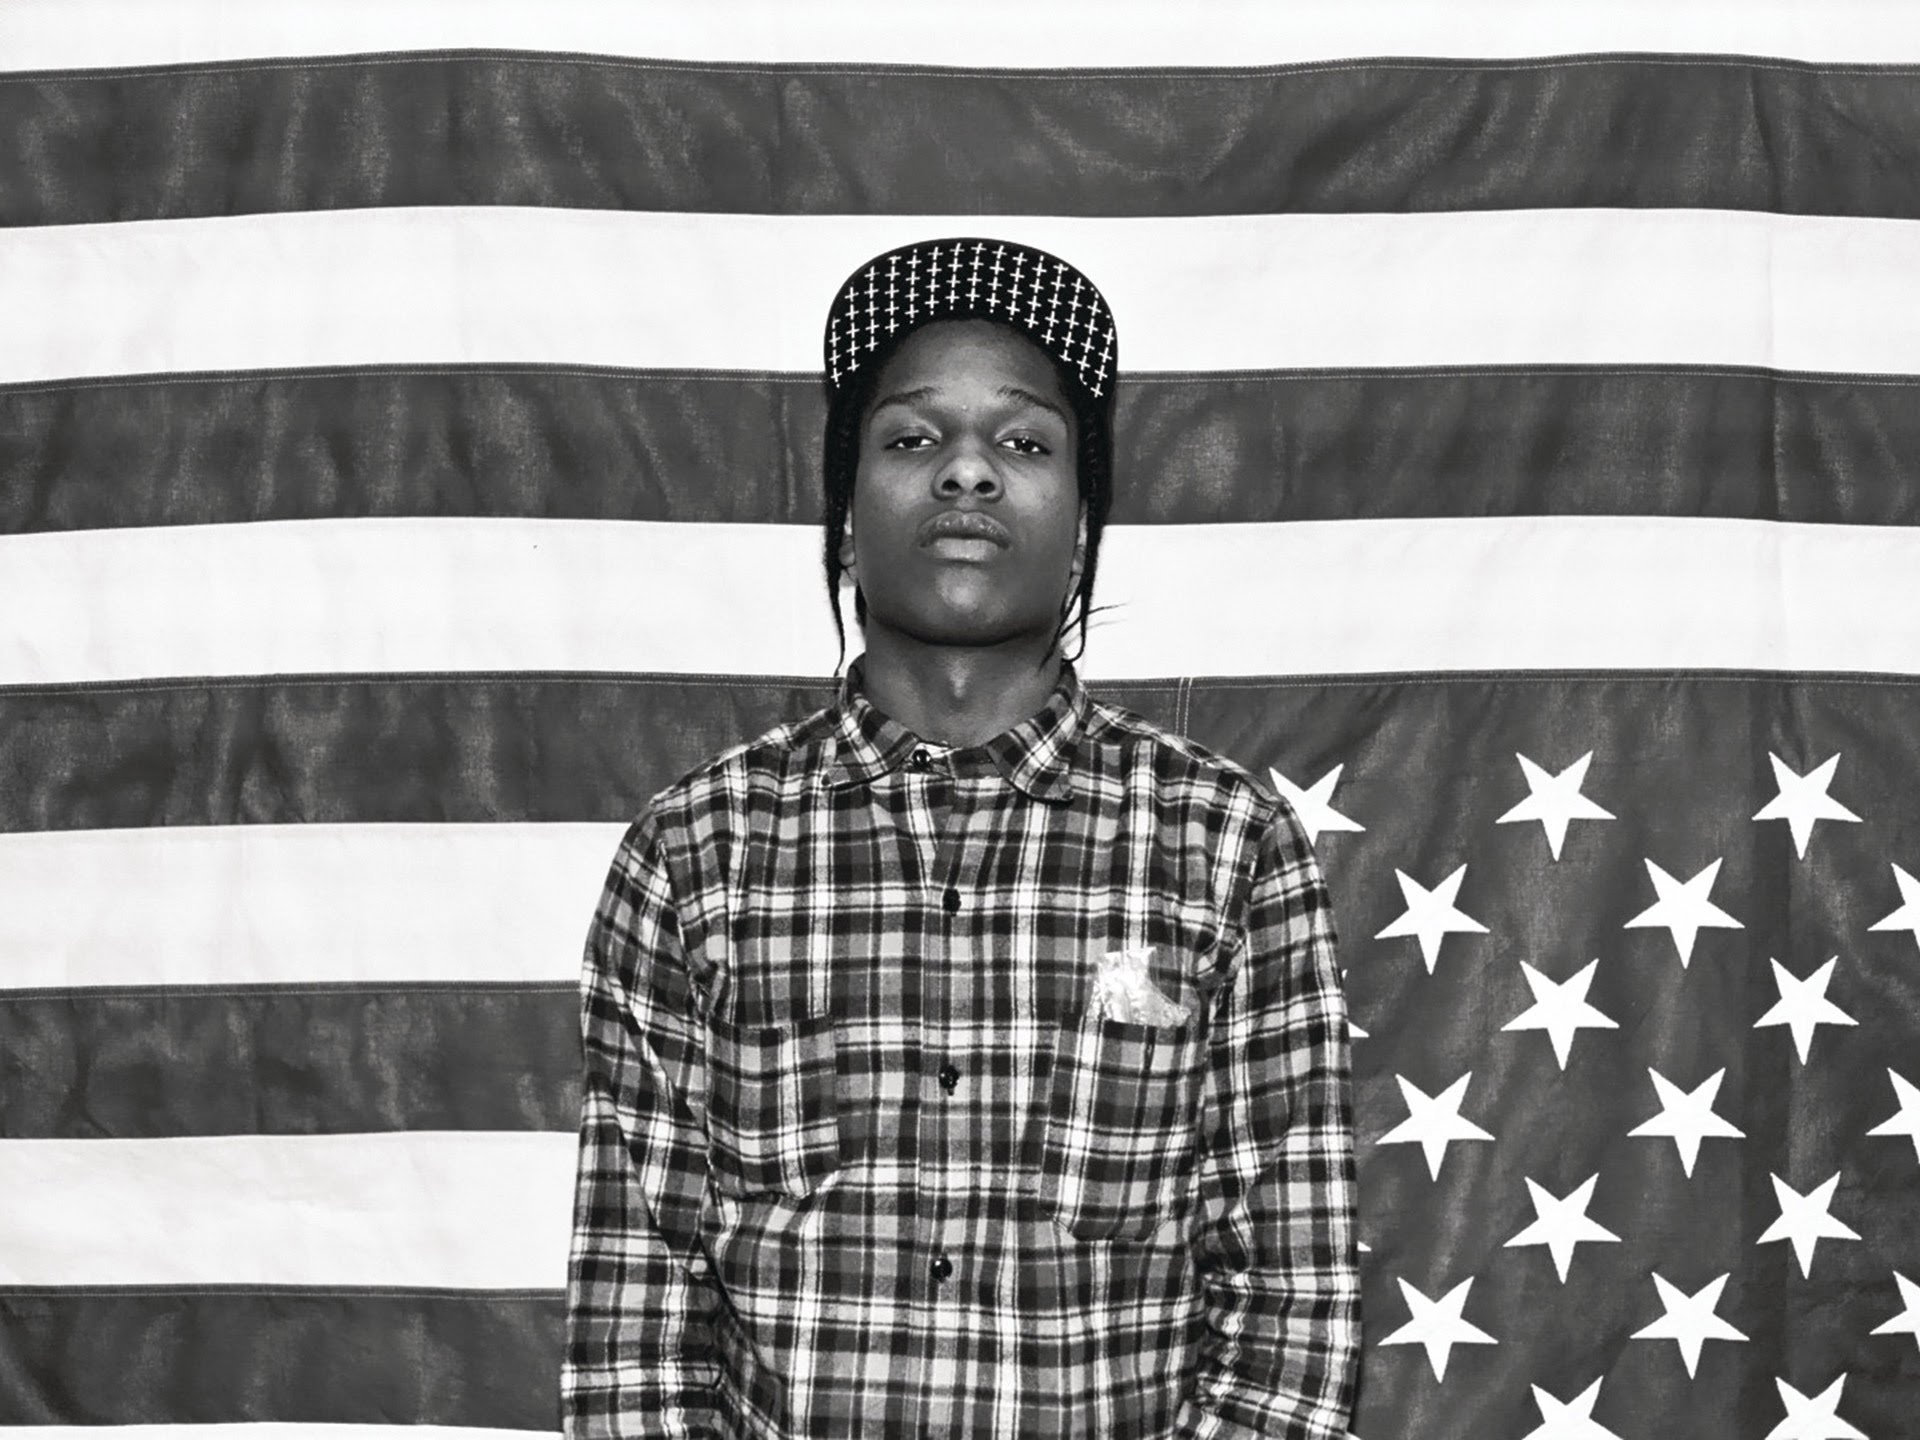 Cheap asap rocky tickets asap rocky concert tickets asap rocky aap rocky tickets kristyandbryce Images